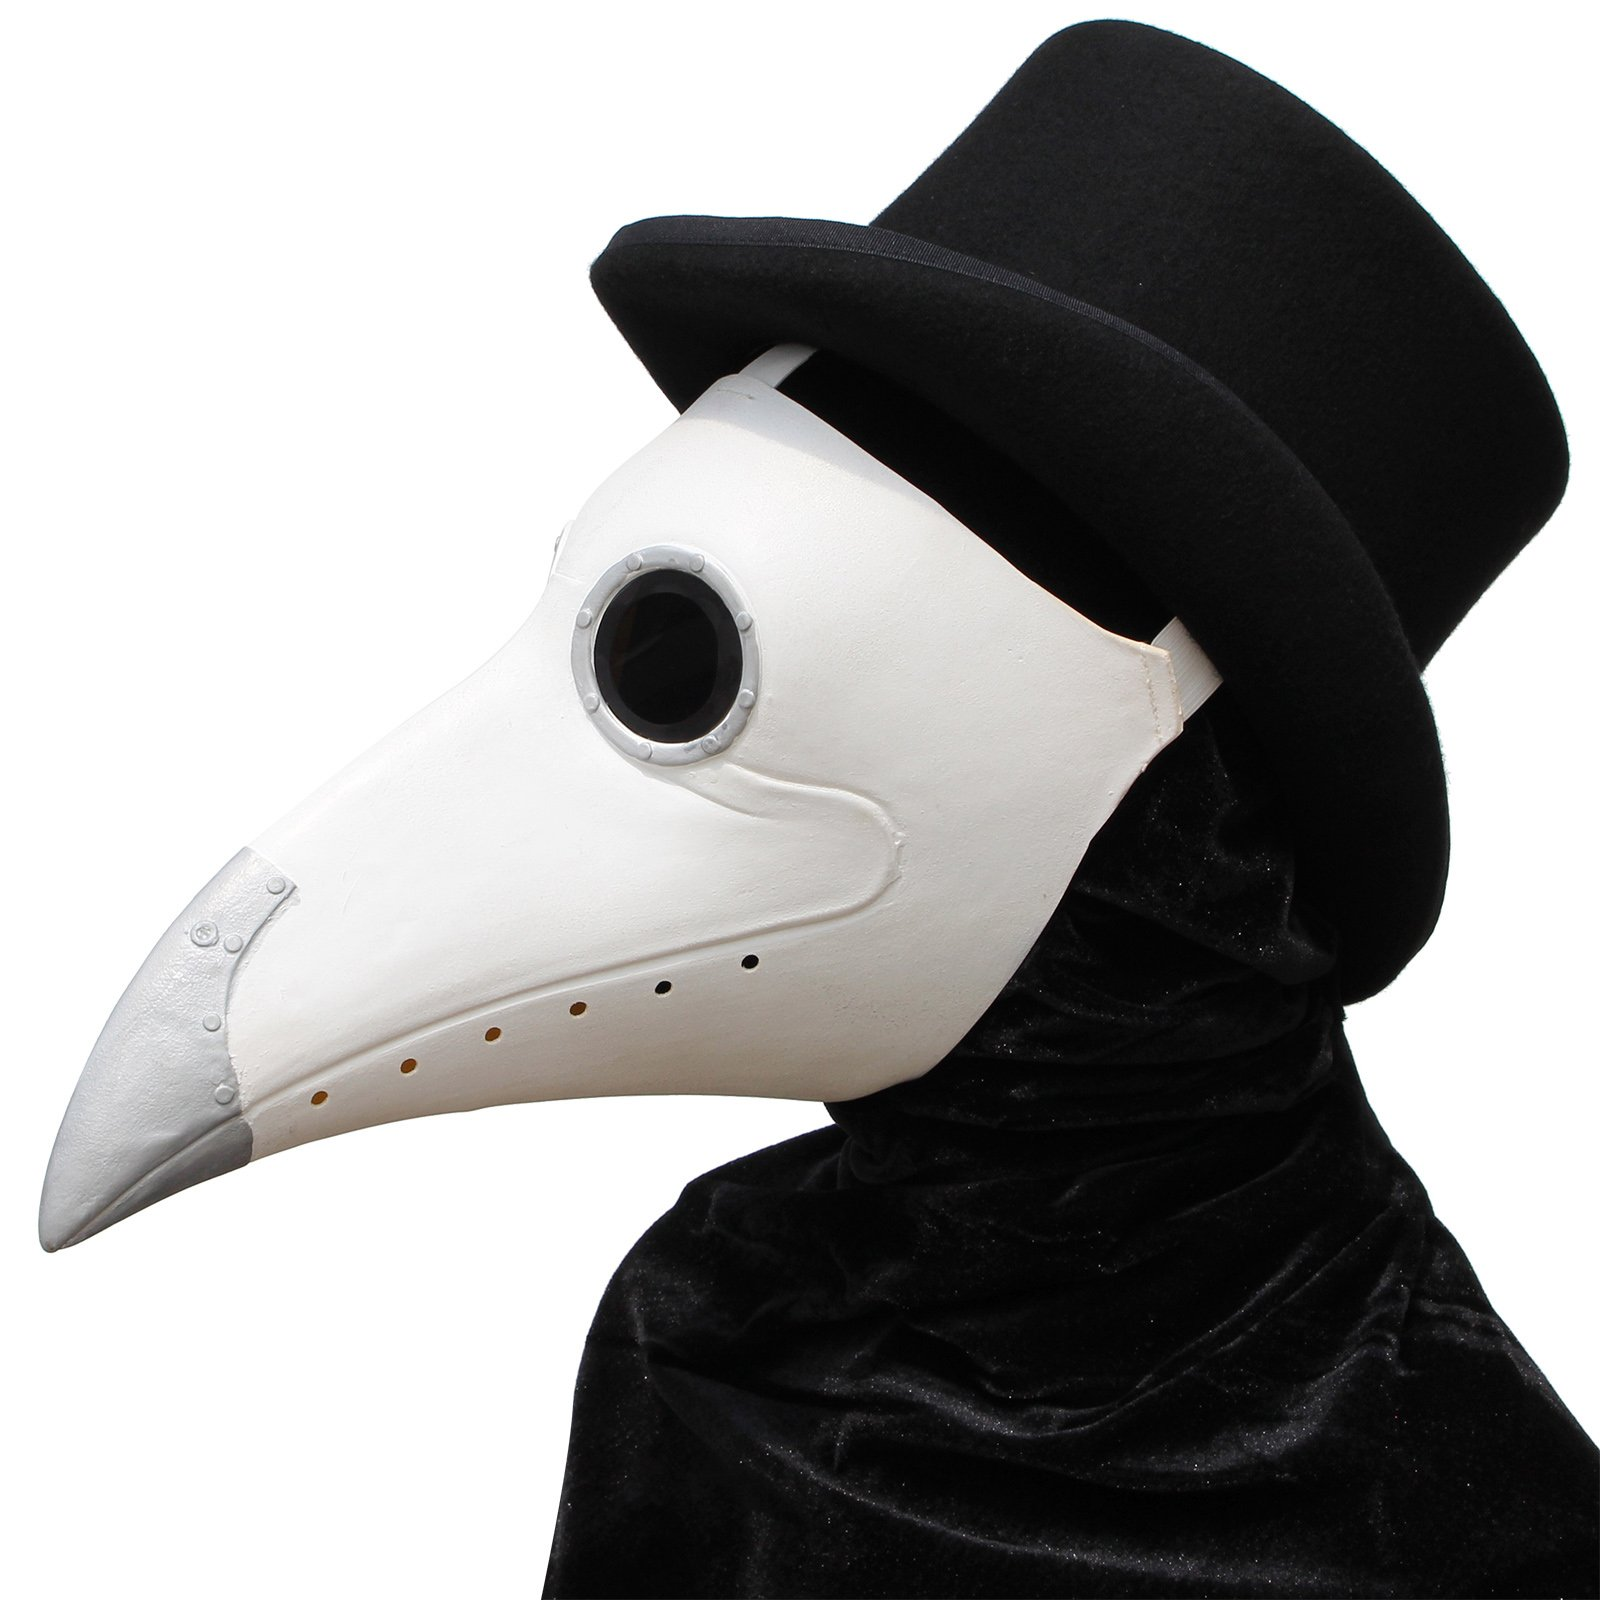 PartyCostume - White Plague Doctor Mask - Long Nose Bird Beak Steampunk Halloween Costume Props Mask